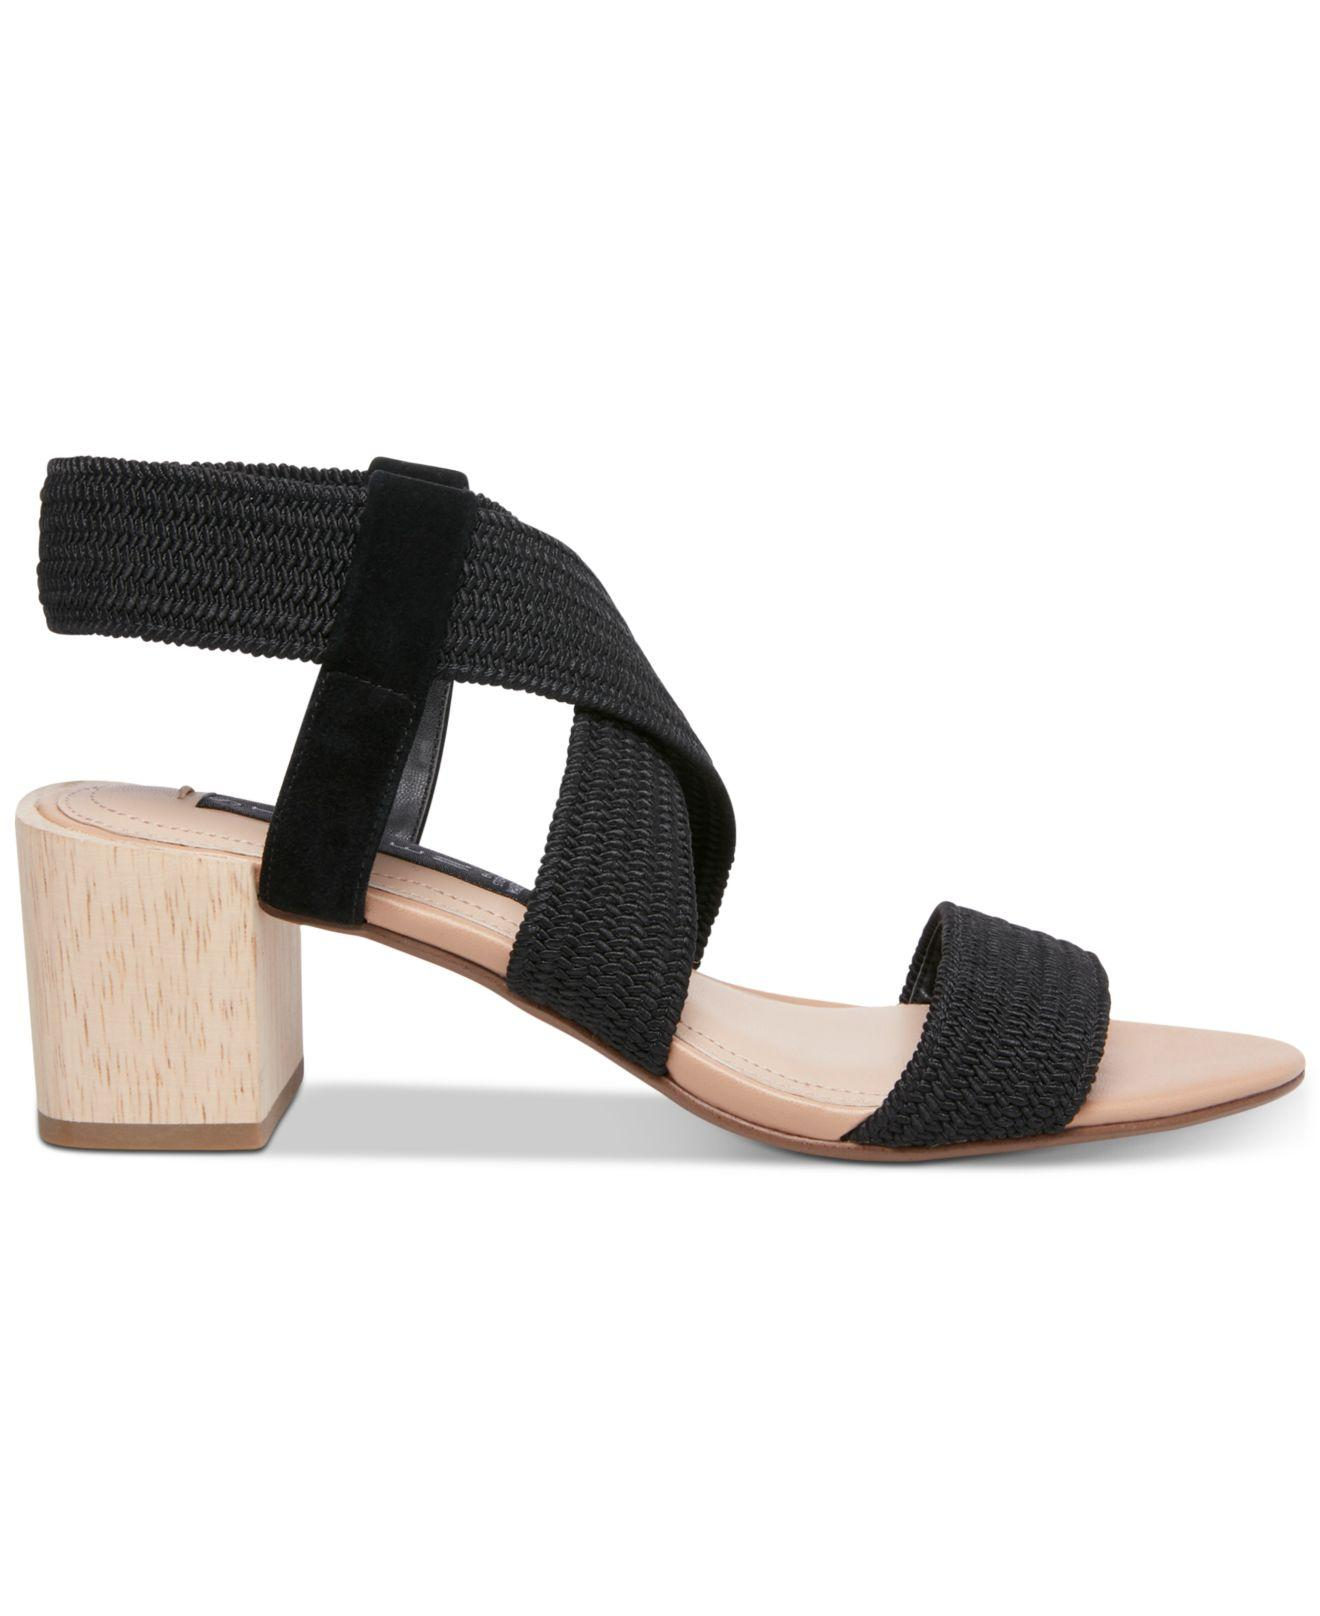 6ae7a3ef62a1 Lyst - Steven by Steve Madden Release Stretch City Sandals in Black